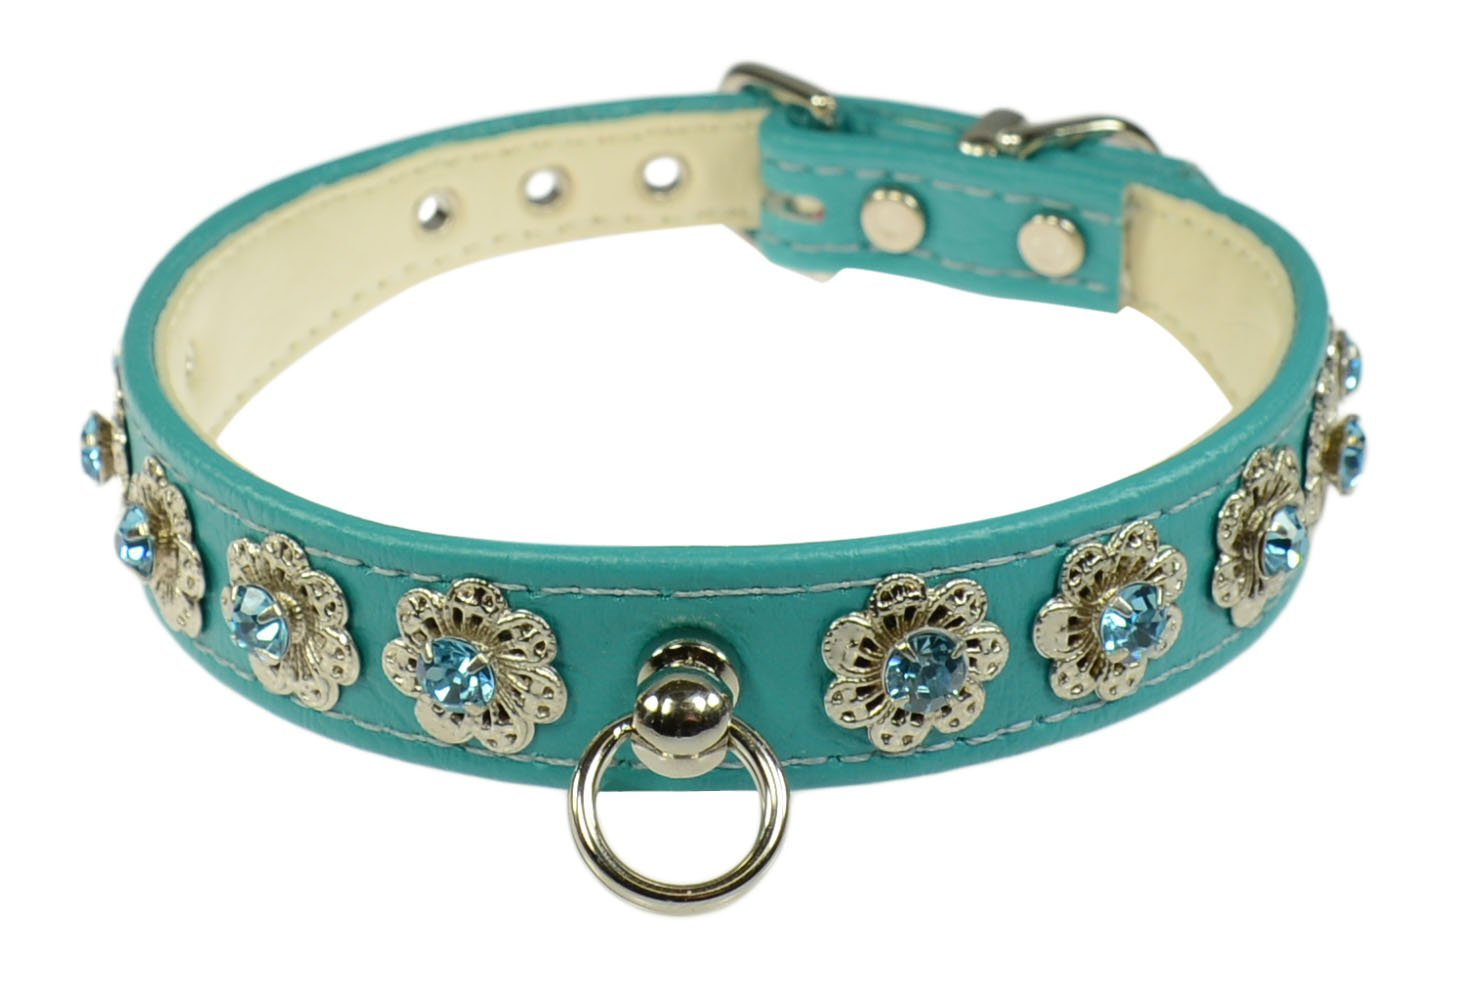 Evans Collars 3 4  Shaped Collar with Starlight Pattern, Size 20, Vinyl, Turquoise